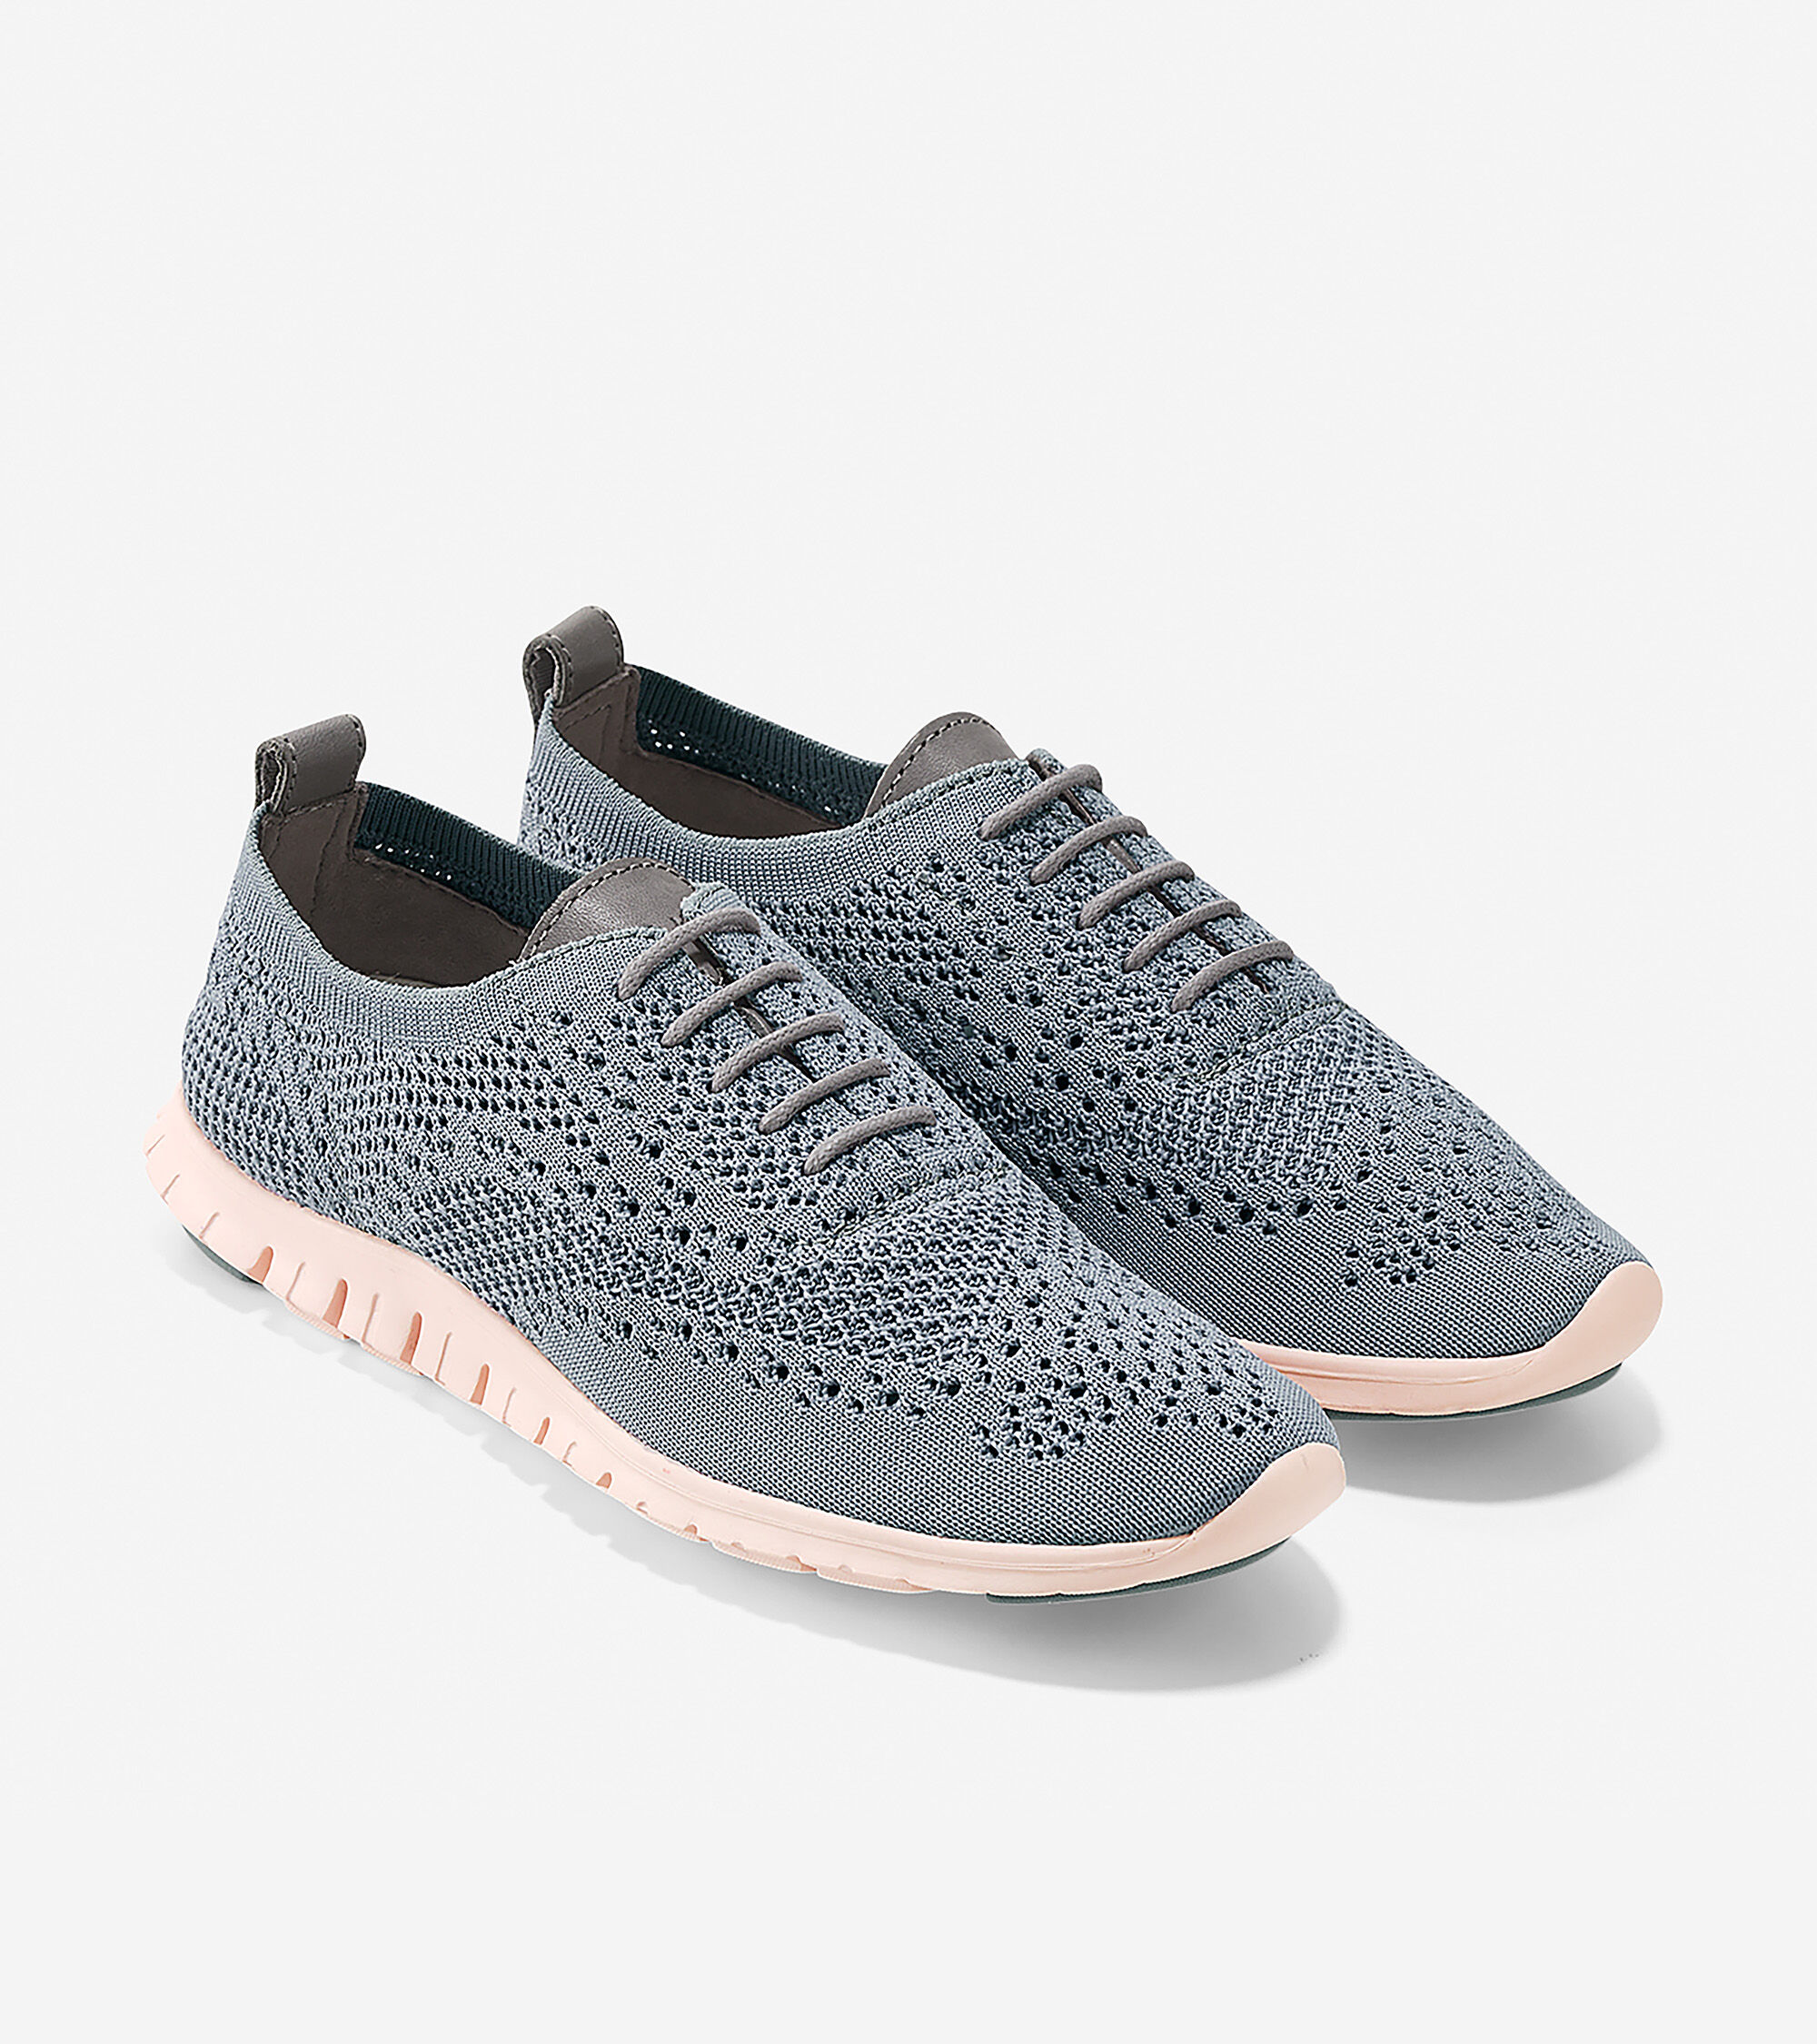 Cole Haan Nike Air Shoes Nordstrom